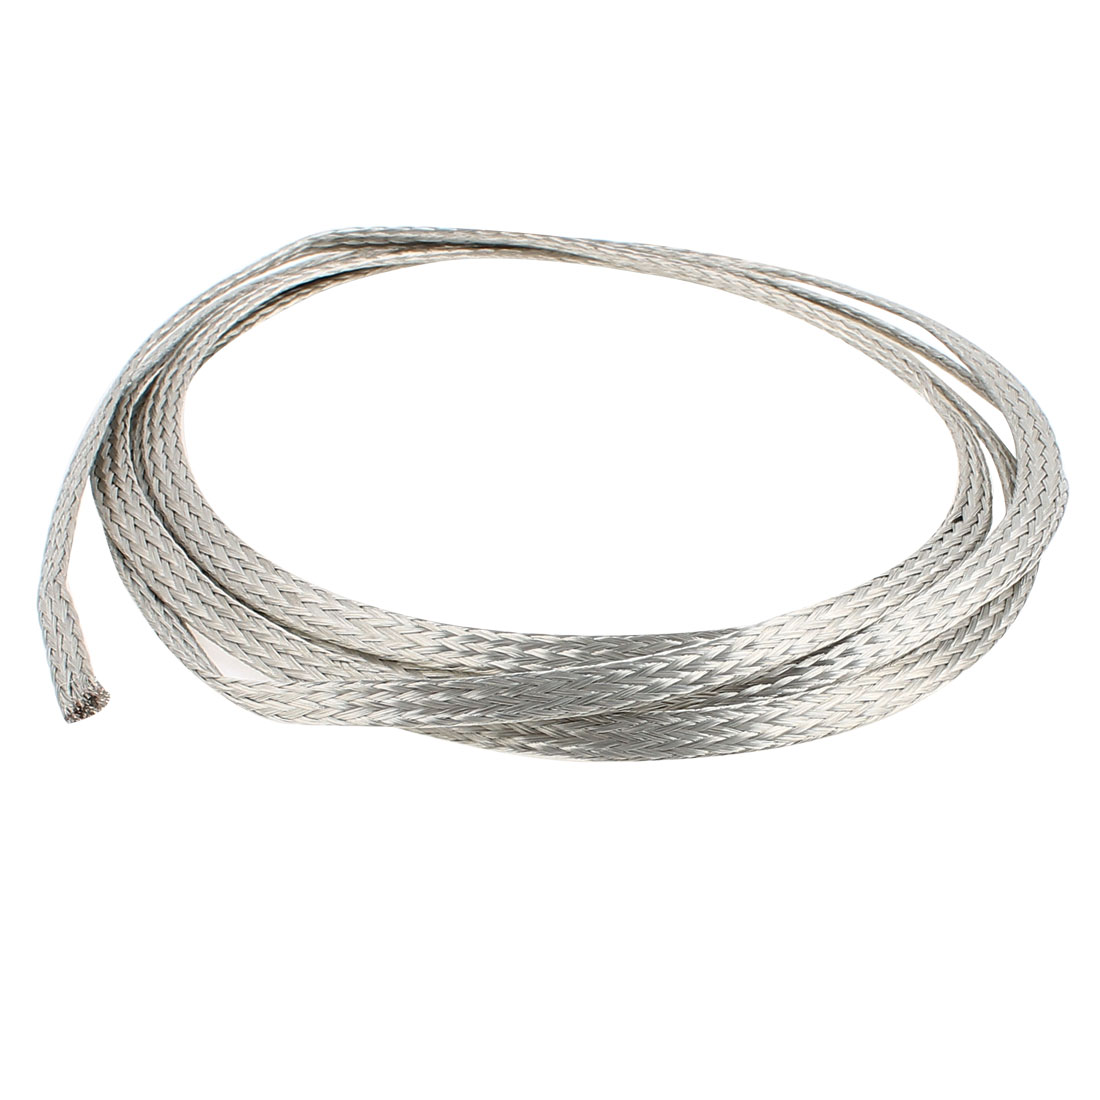 4 Square Millimeter Thickness 2M Length Flat Bare Tined Braided Copper Wire